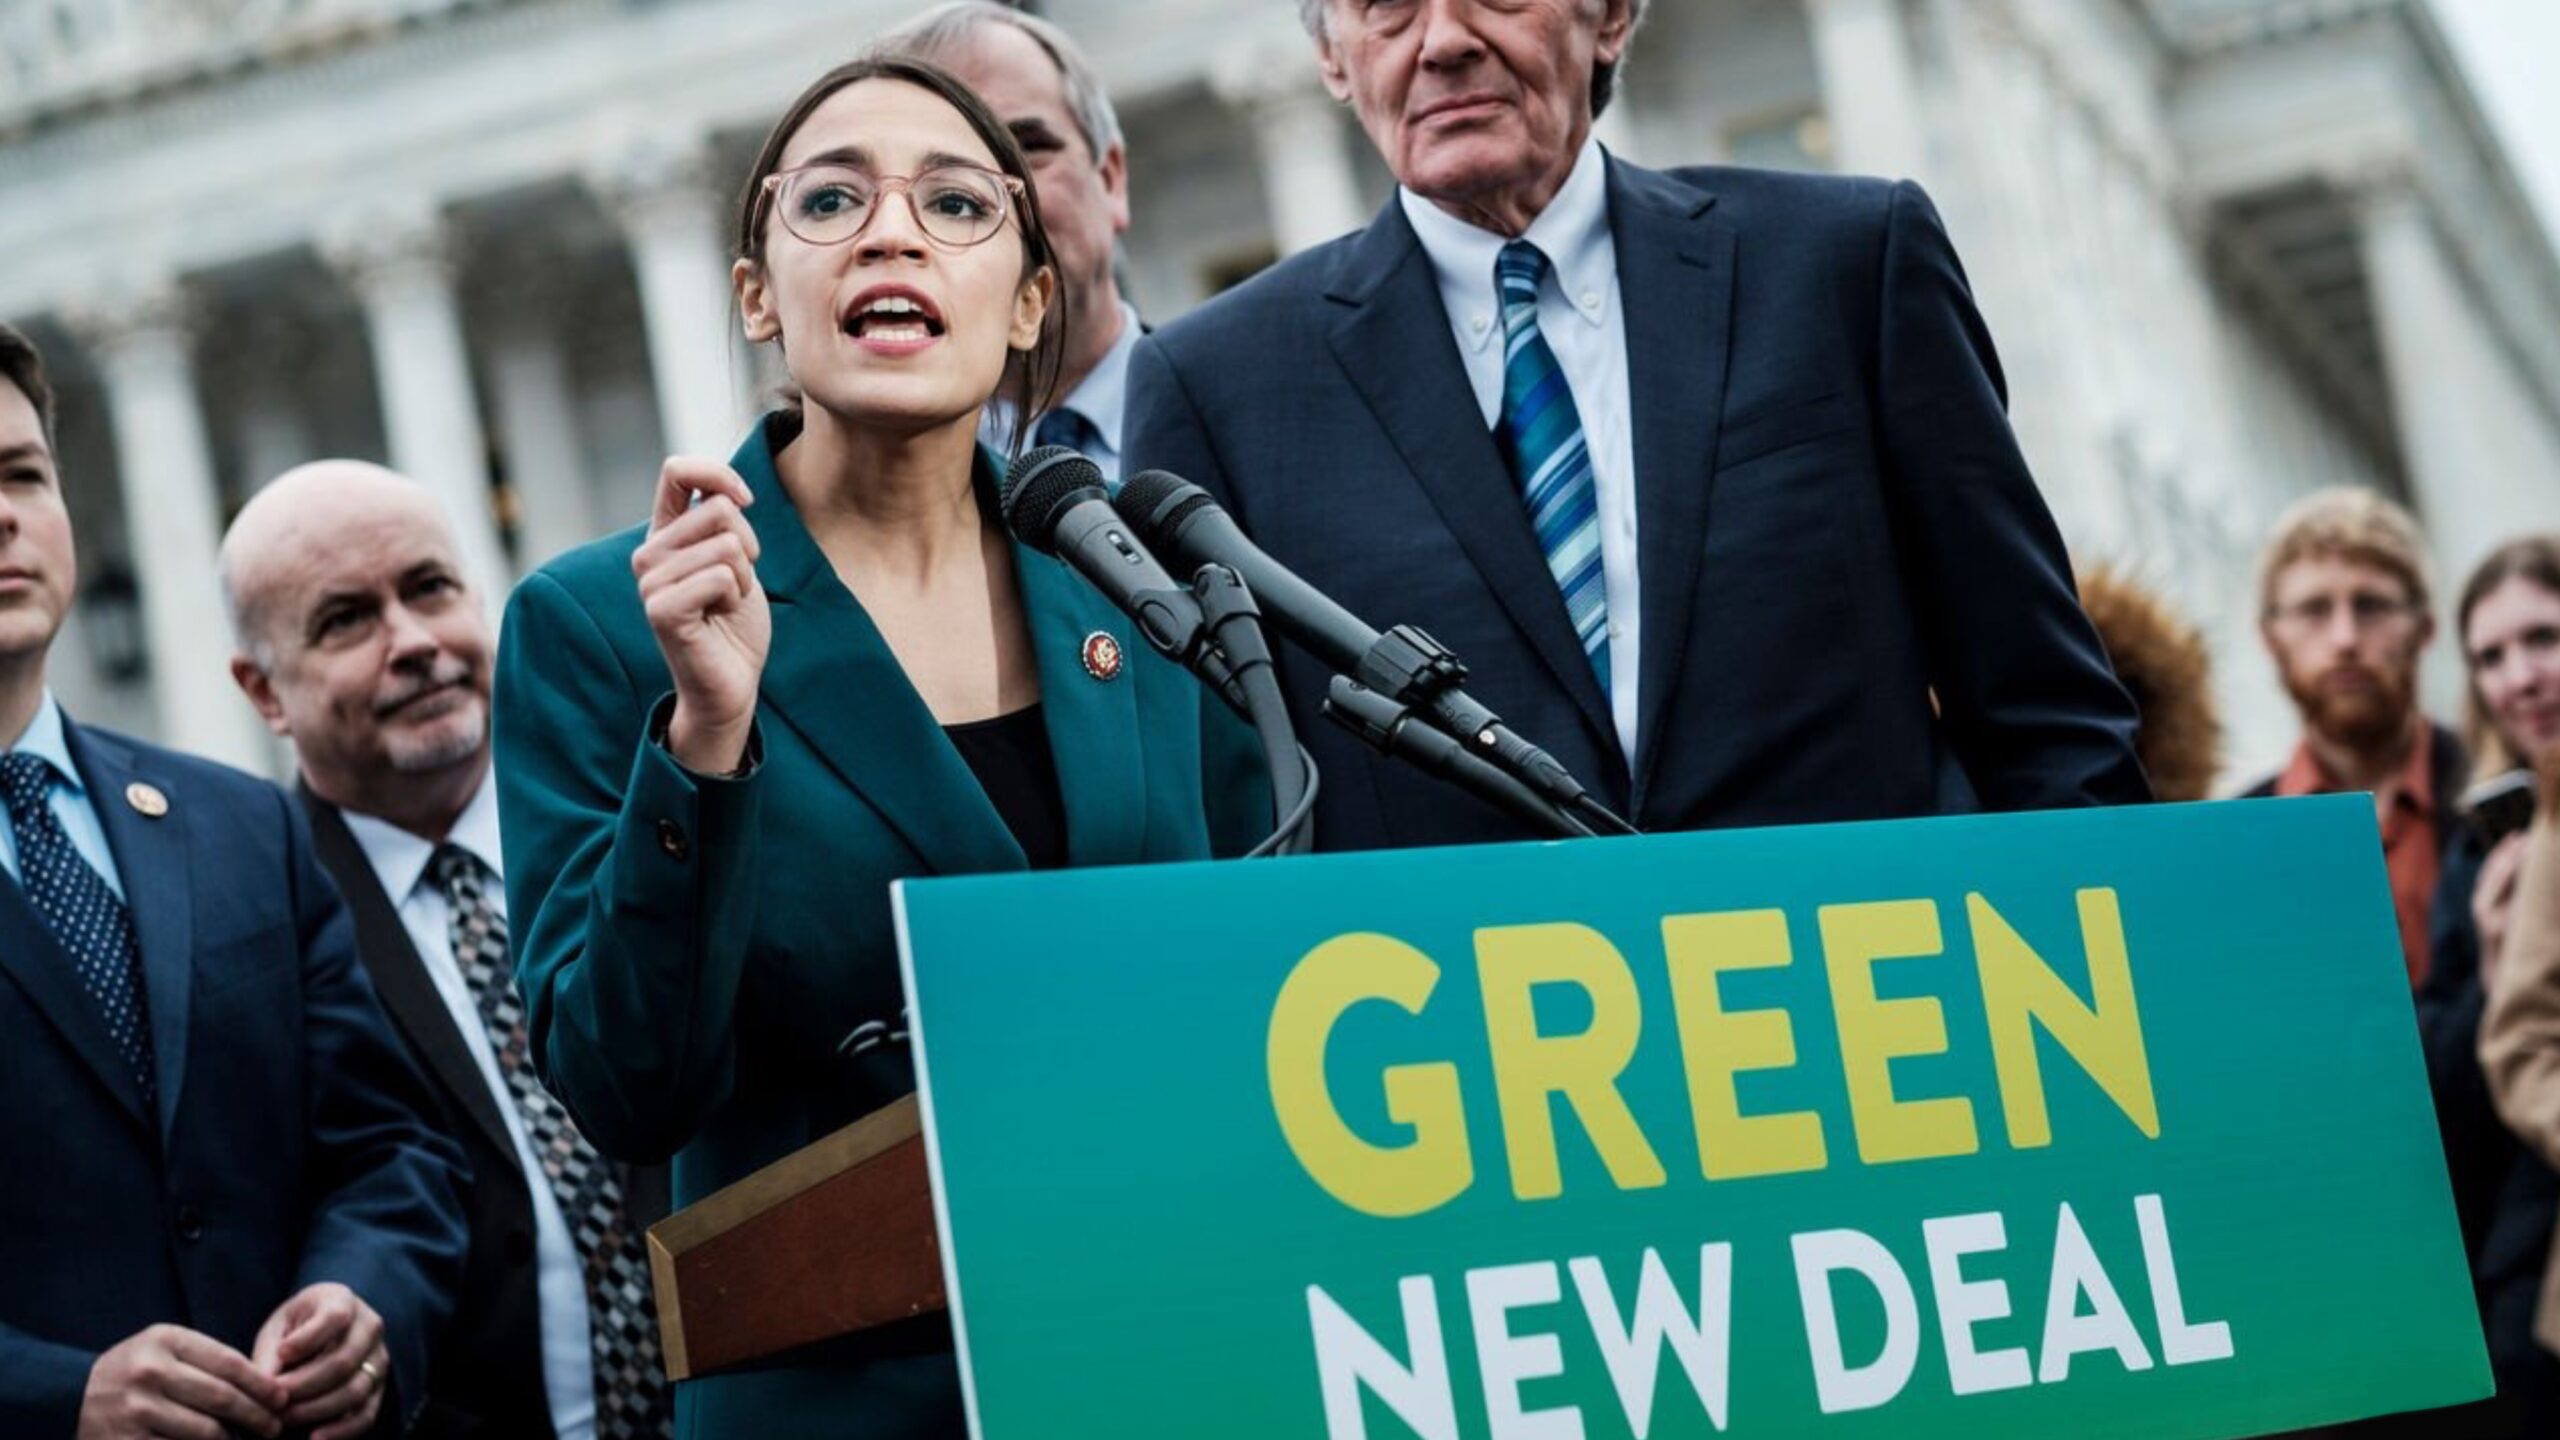 Environmentalism, climate change, green new deal, AOC